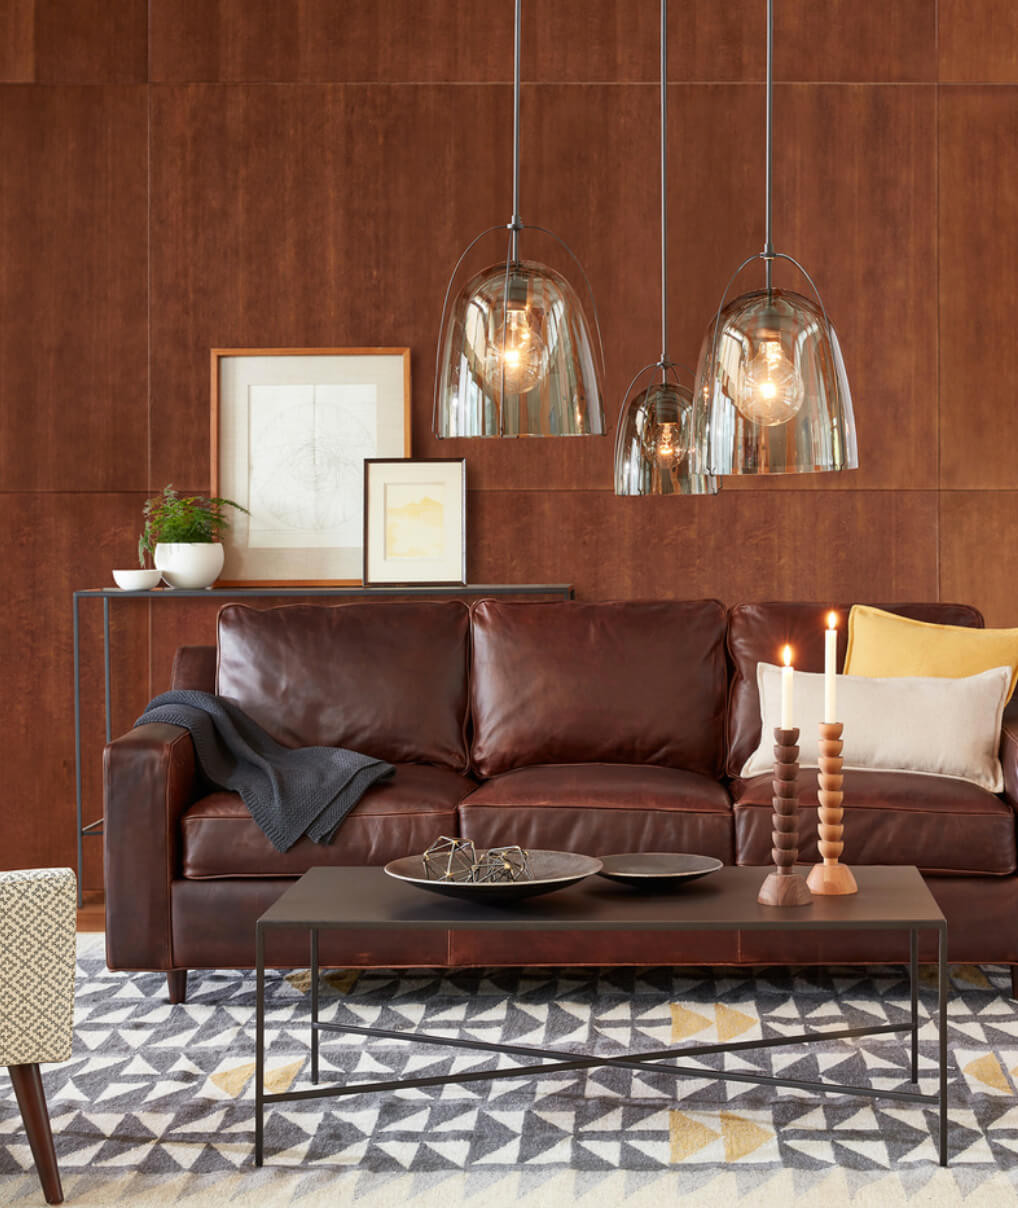 Best ideas about Living Room Rug Ideas . Save or Pin 12 Living Room Rug Ideas That Will Change Everything Now.